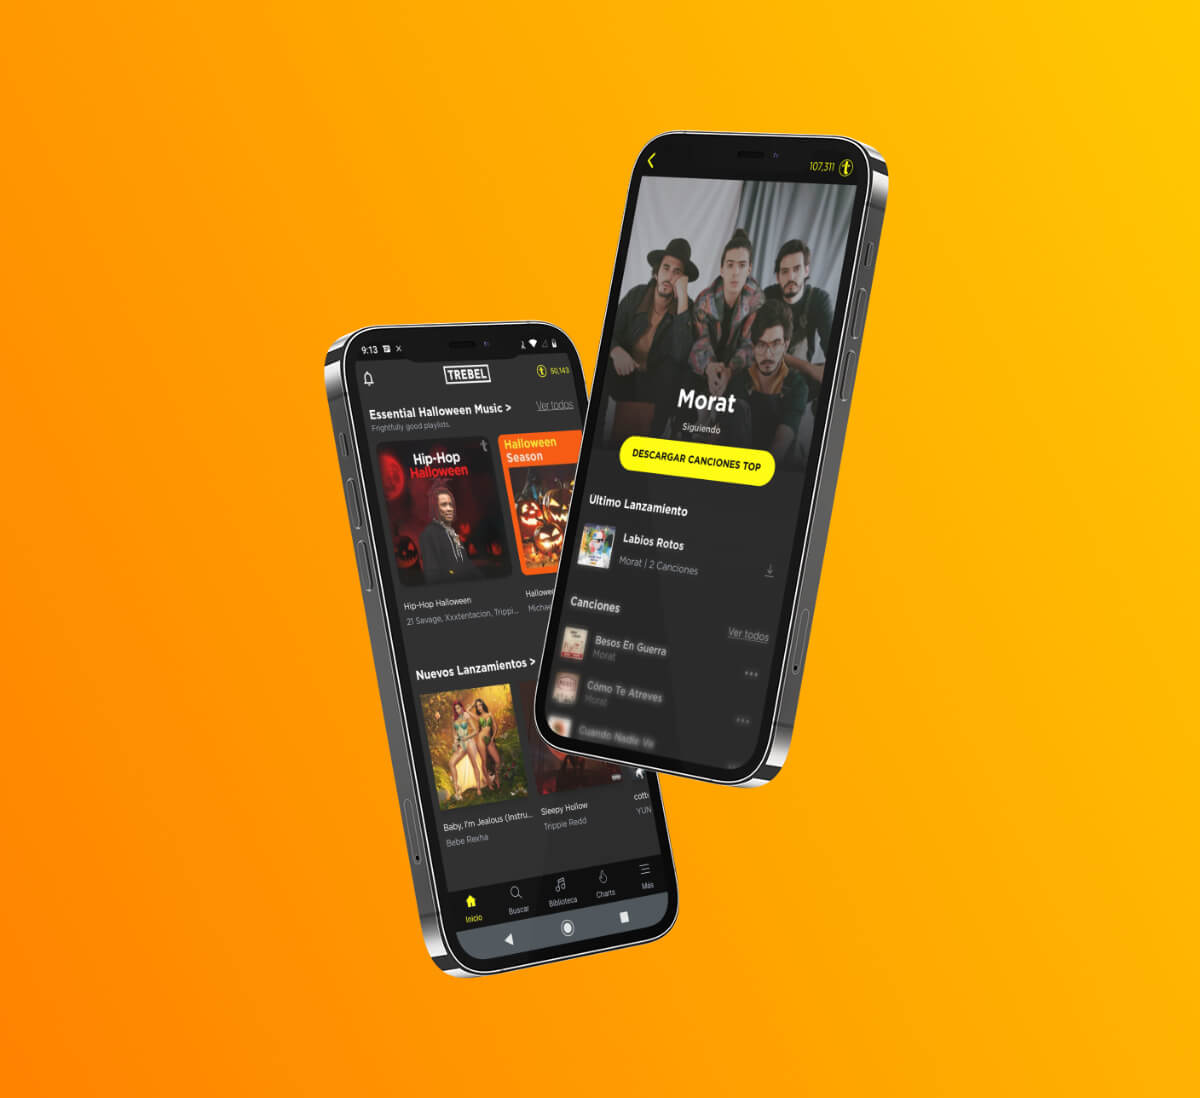 TREBEL app screens on iPhones showing Morat artist page and playlists